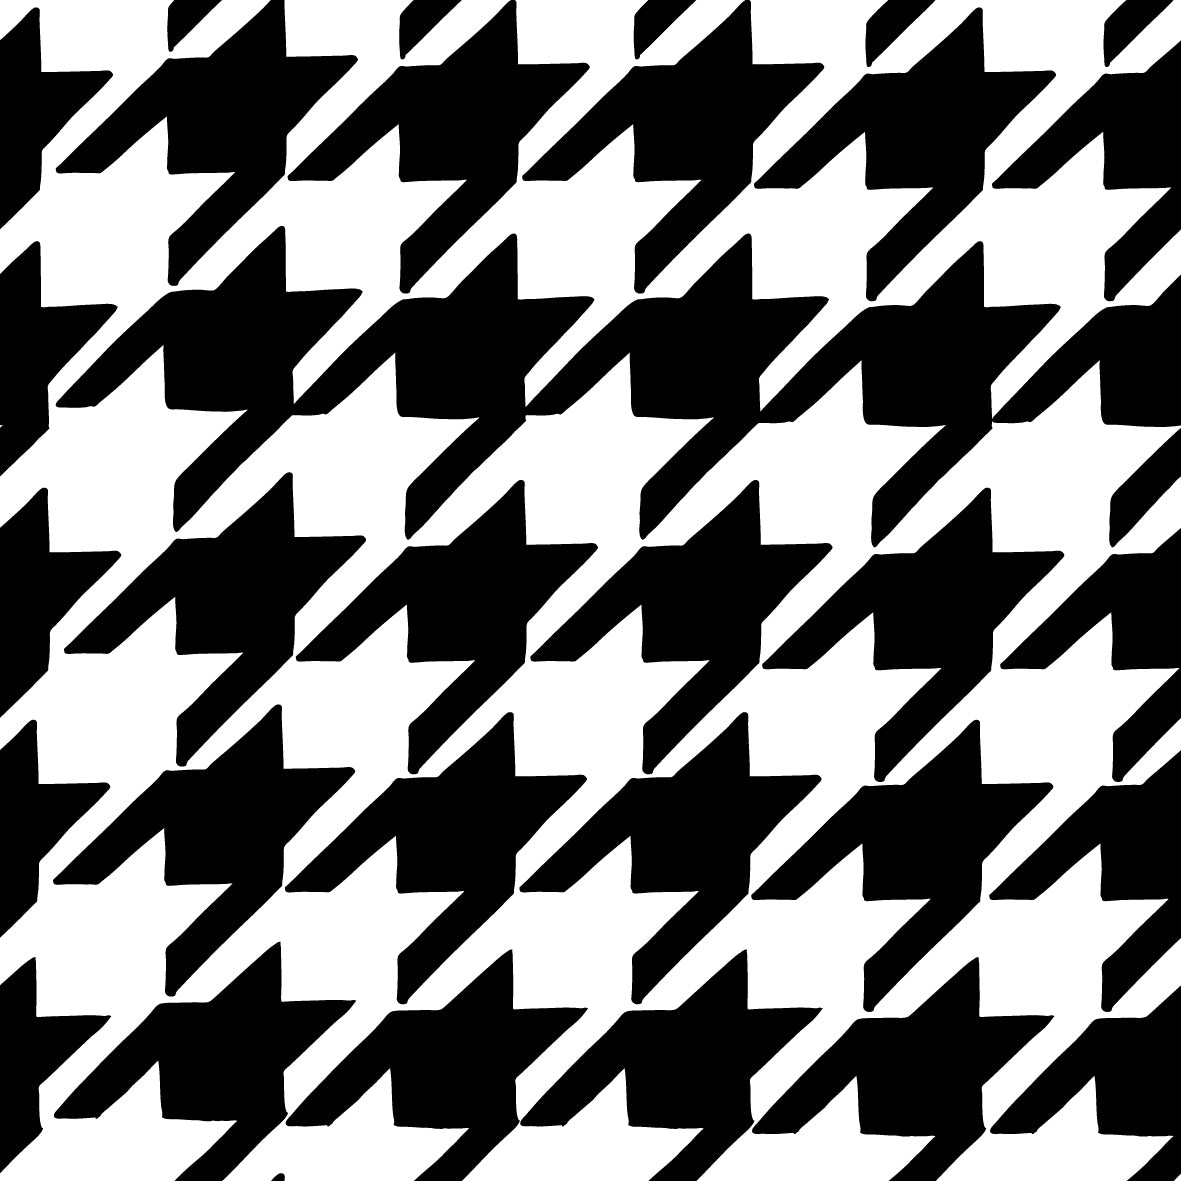 Dog's tooth, Hound's tooth Pattern